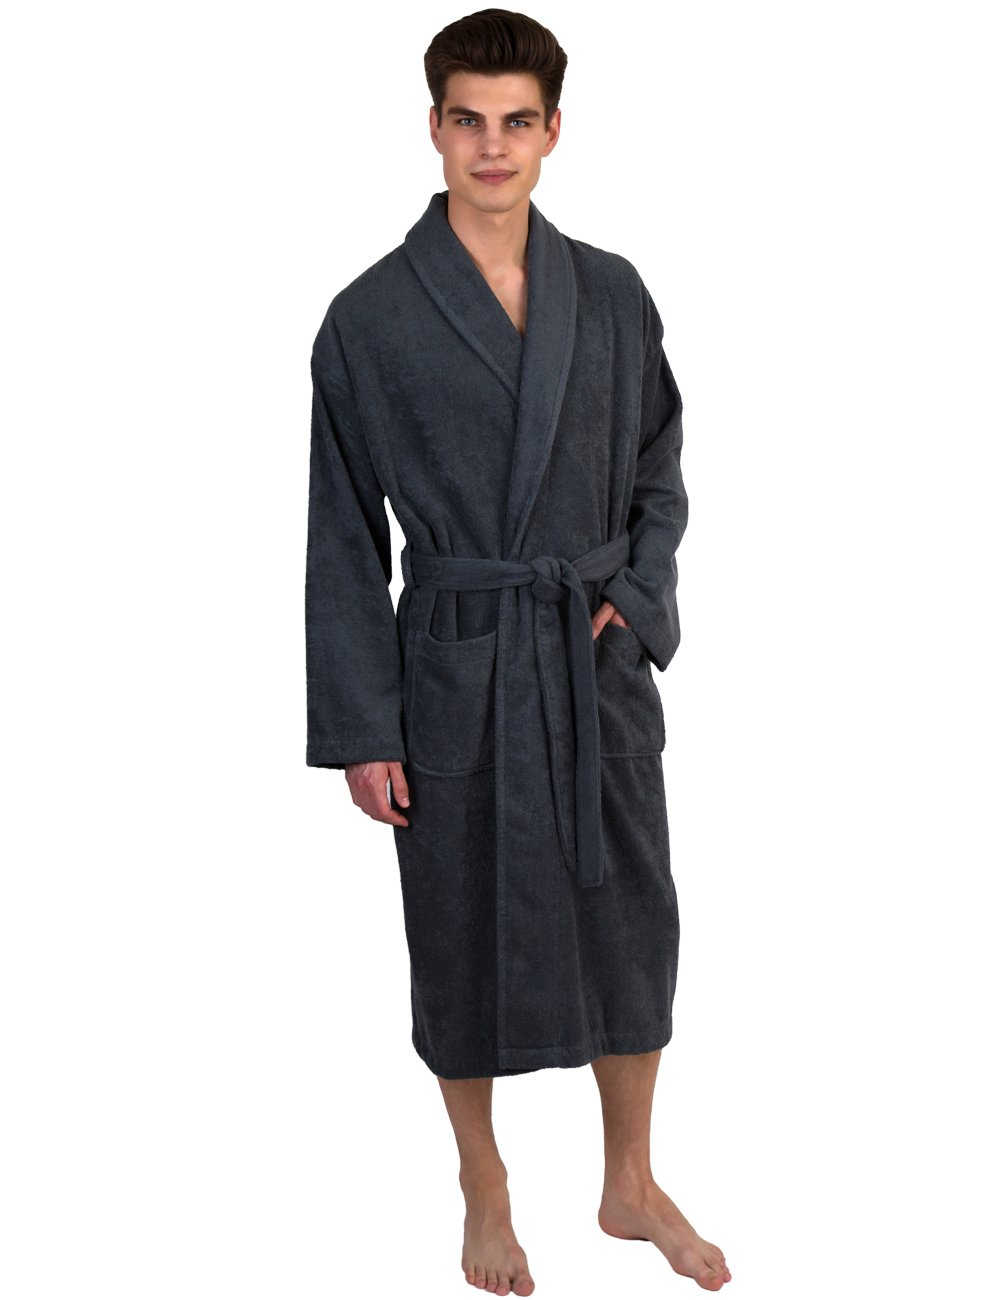 TowelSelections Men's Robe, Turkish Cotton Terry Shawl Bathrobe Large/X-Large Charcoal